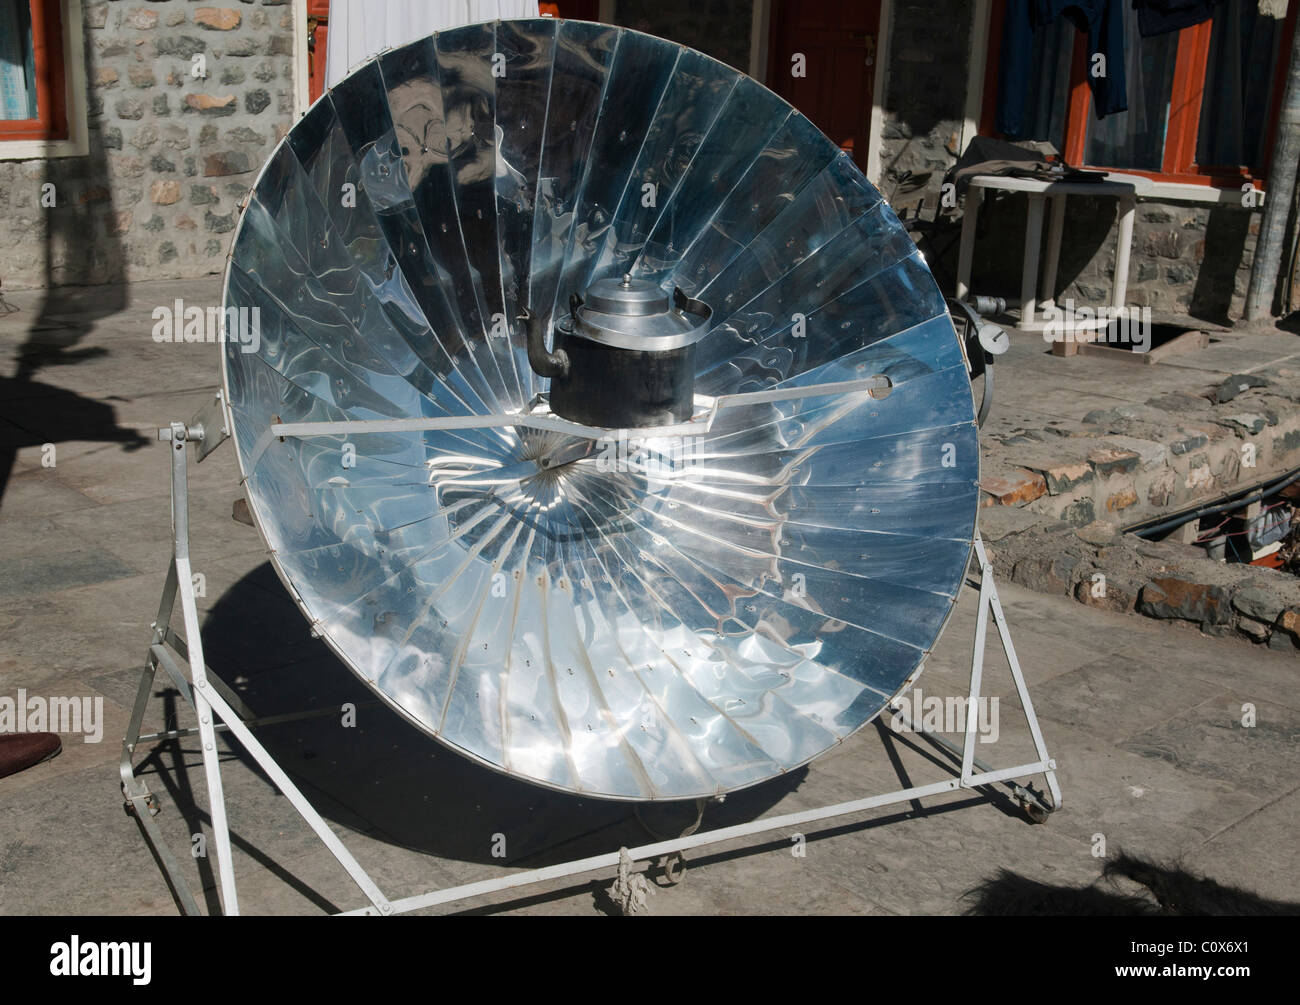 solar powered cooker at a lodge in Kagbeni in the Mustang area of the Annapurna region of Nepal - Stock Image